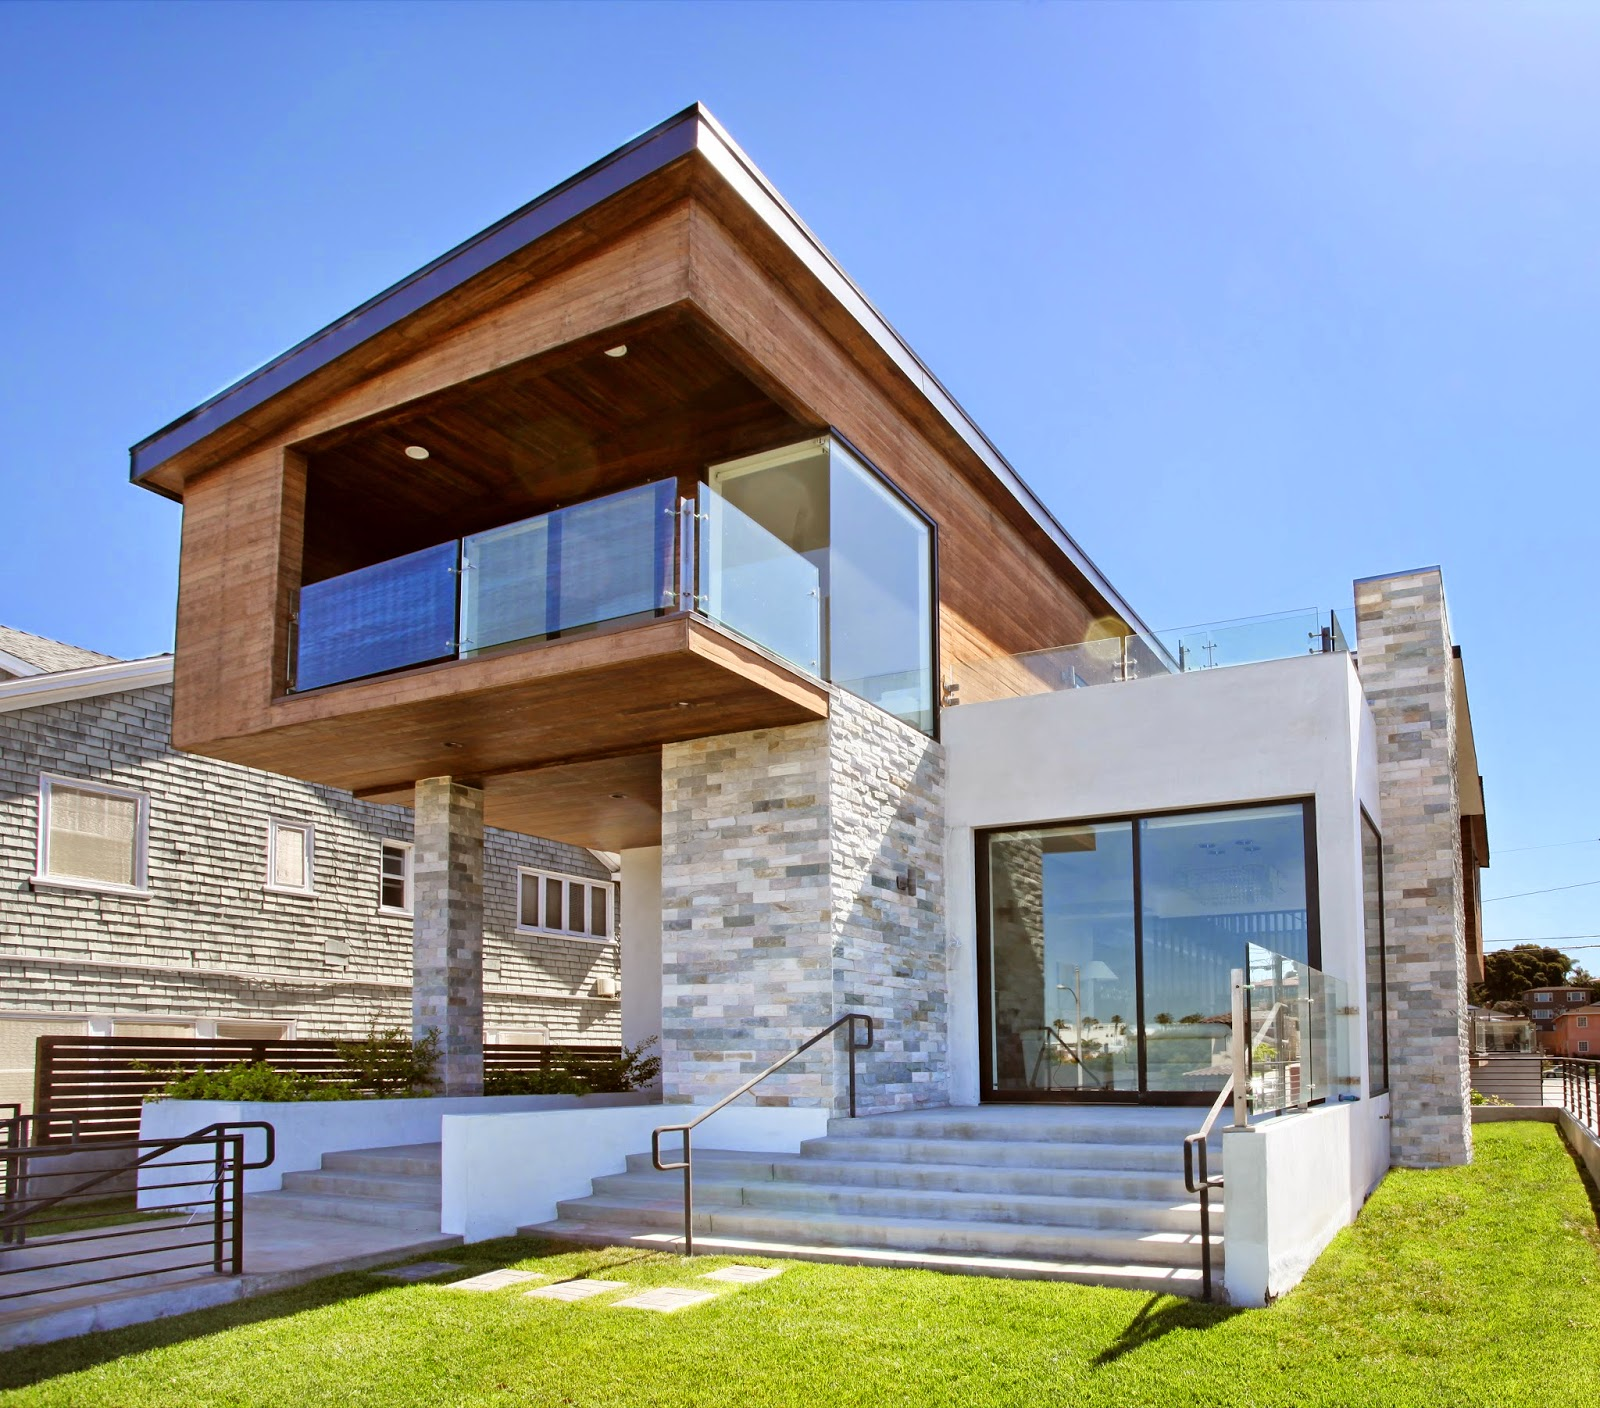 Luxury Homes In Minnesota: Architectural Contemporary Beach House For Sale With Ocean